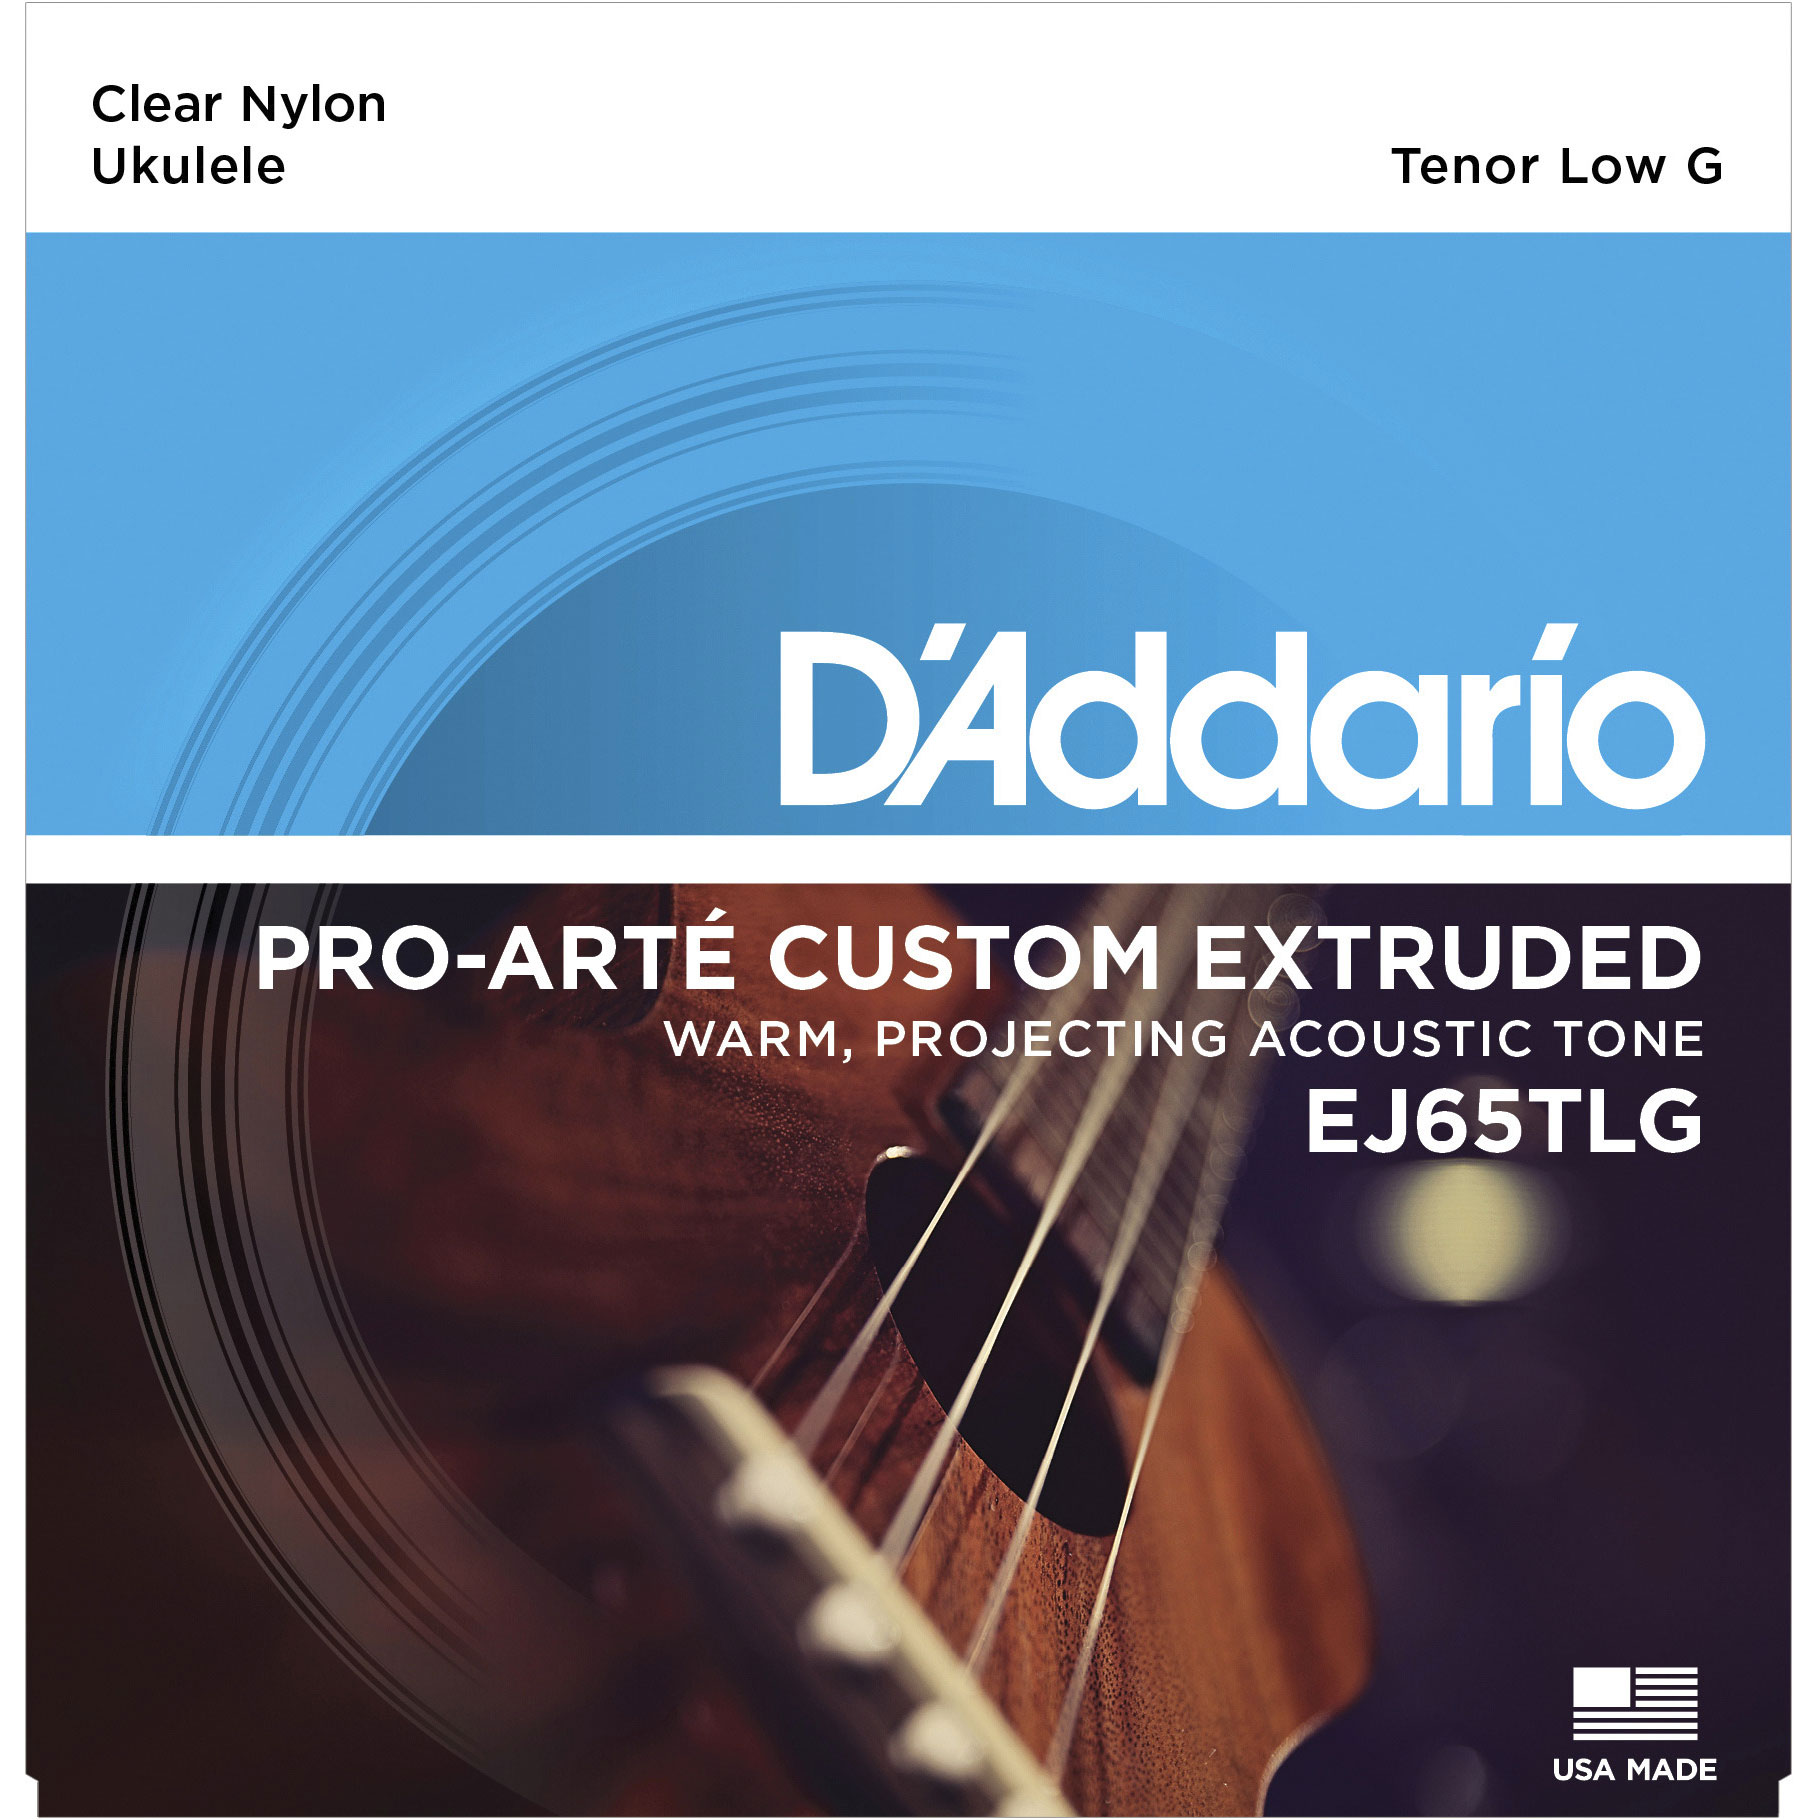 DADDARIO EJ65TLG PRO-ARTÉ CUSTOM EXTRUDED NYLON UKULELE STRINGS, TENOR LOW-G